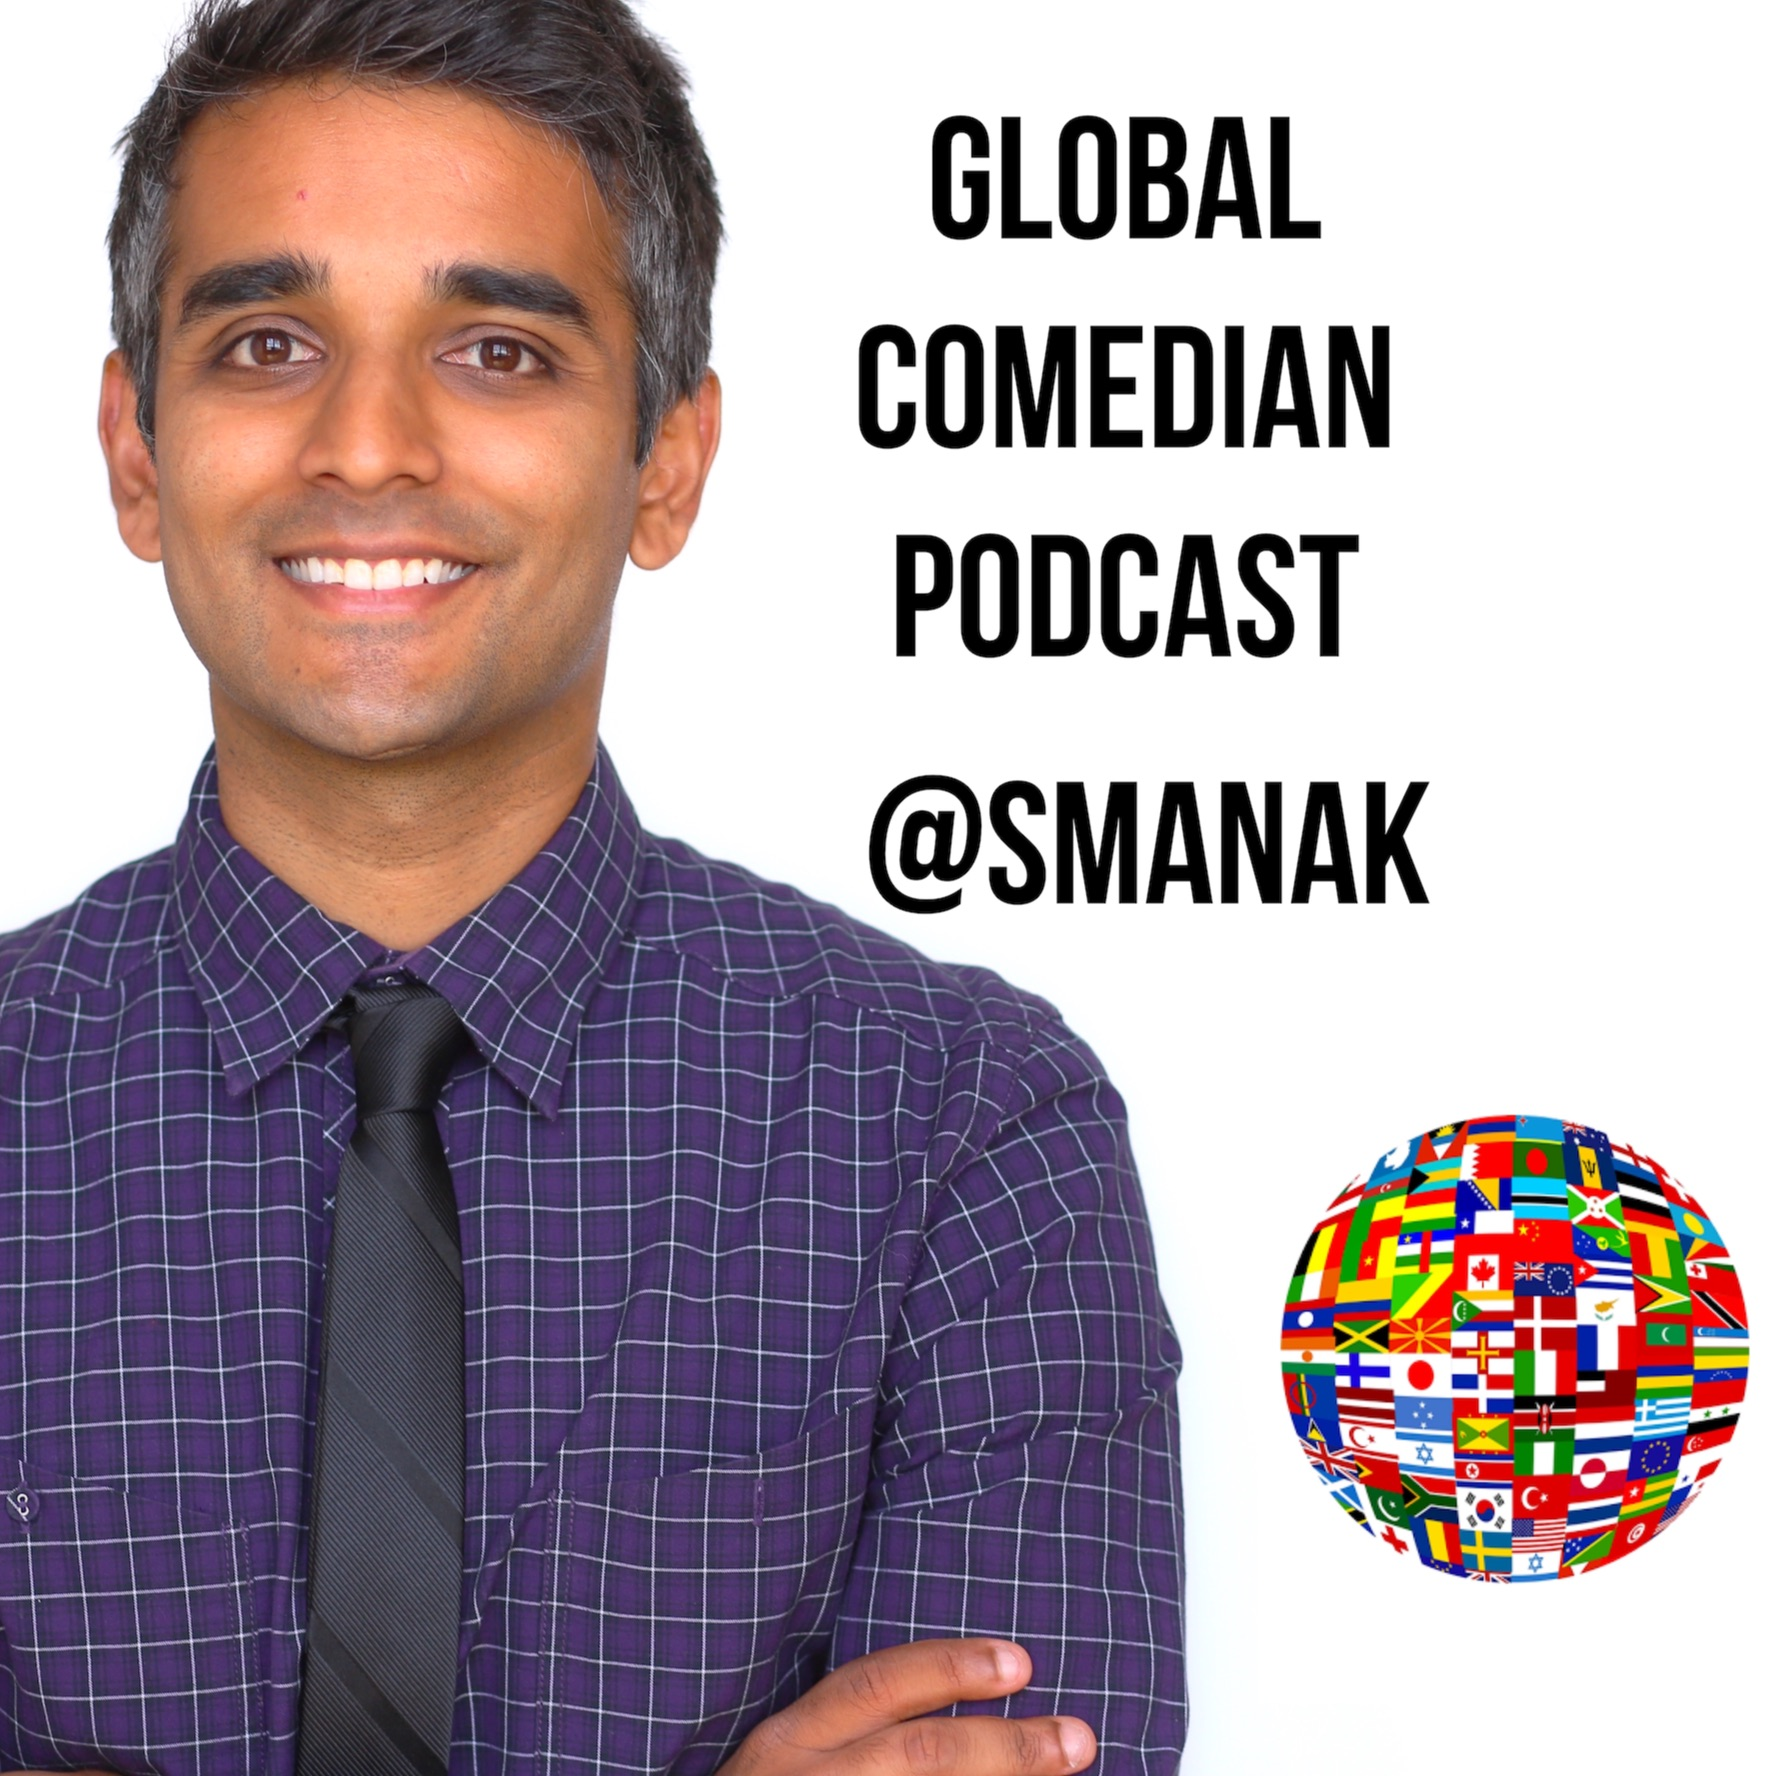 Global Comedian Podcast